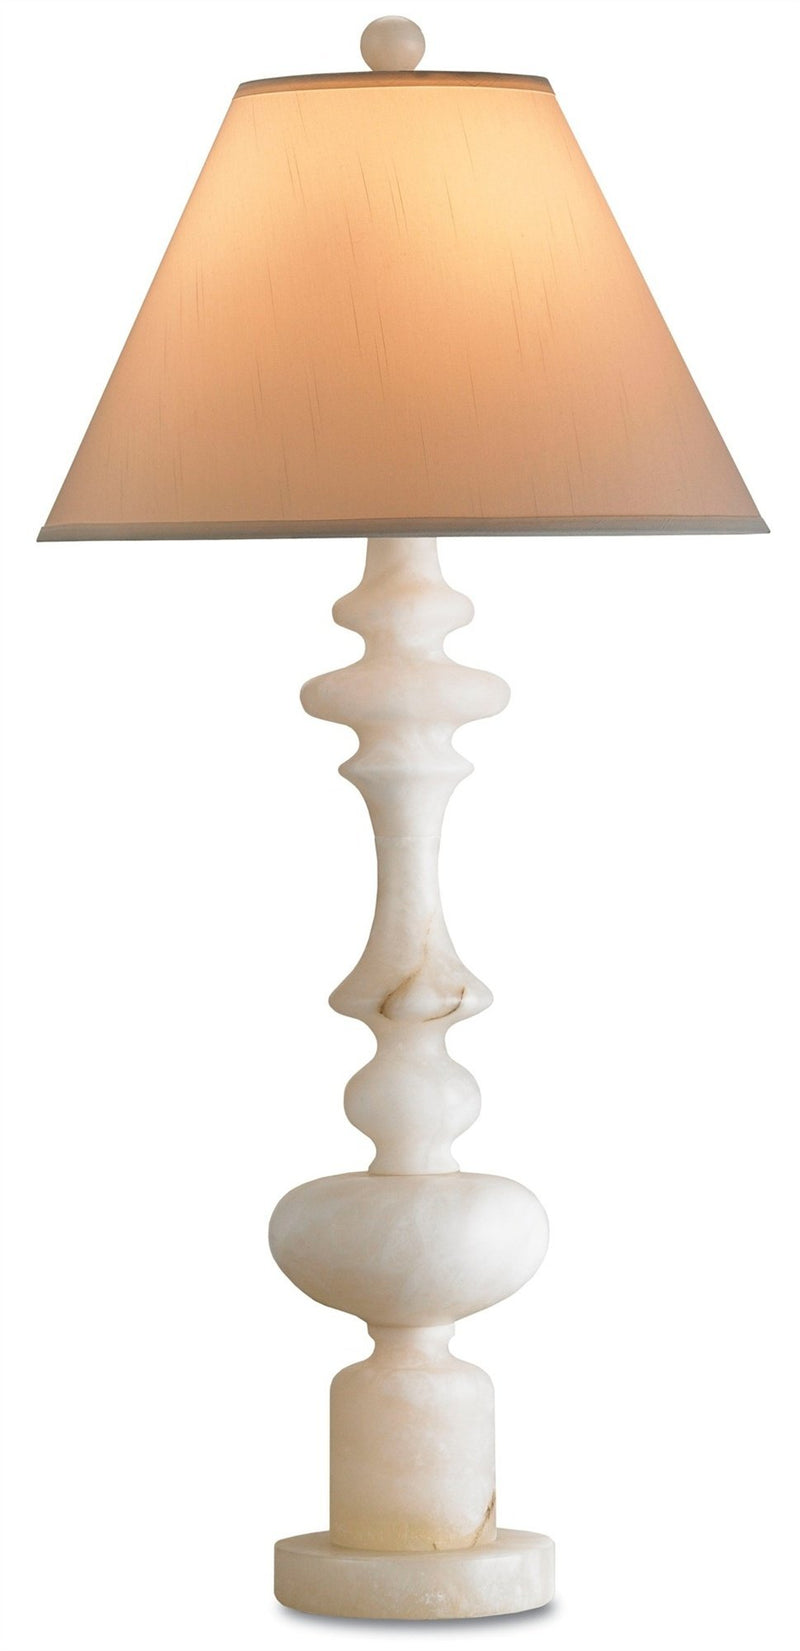 Currey & Company Table Lamp Farrington Table Lamp